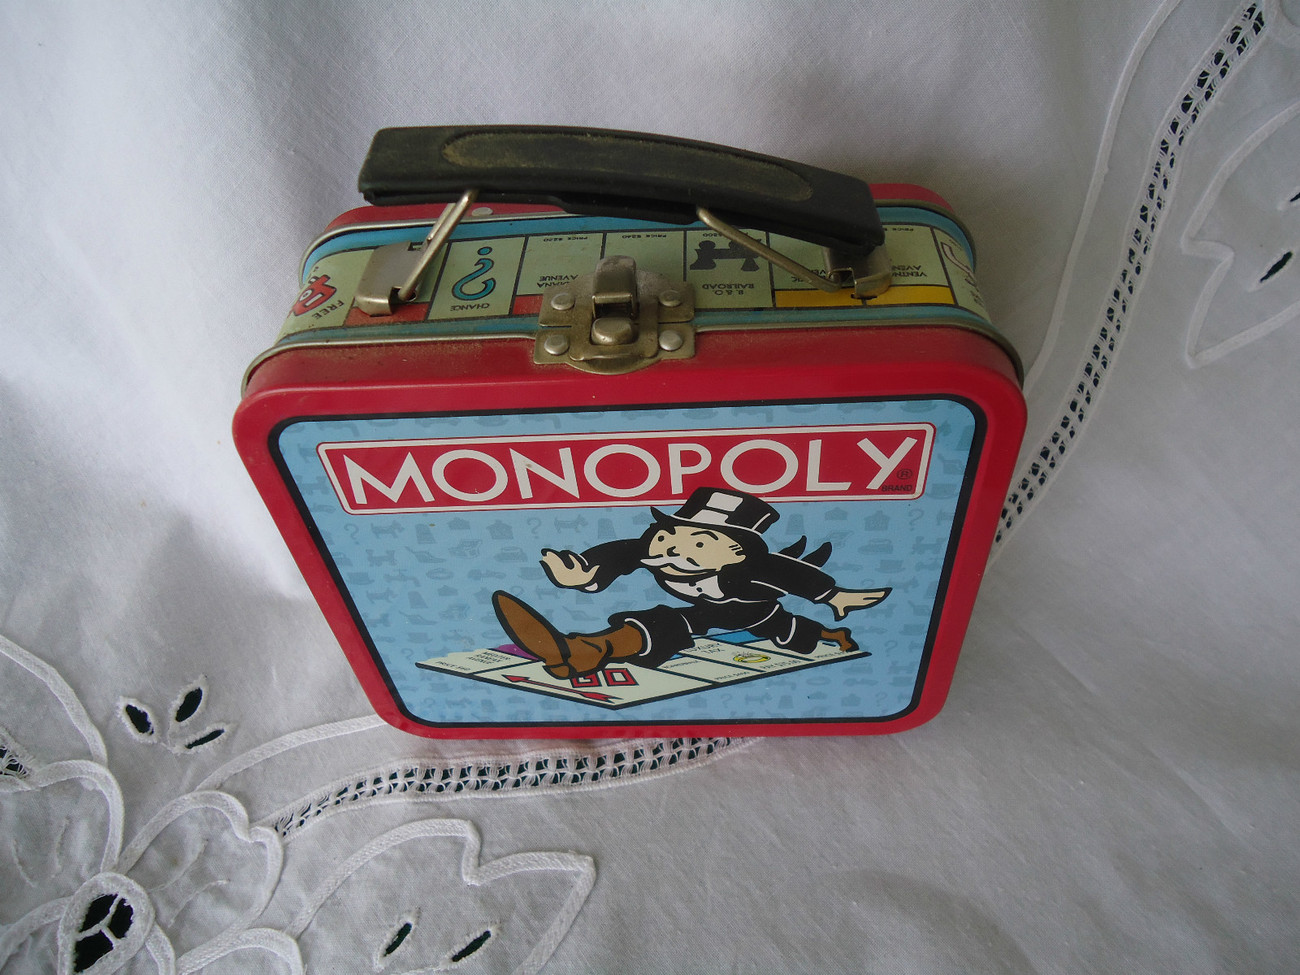 Primary image for Monopoly Mini Metal Lunchbox 1997 Hasbro  VG  Condition